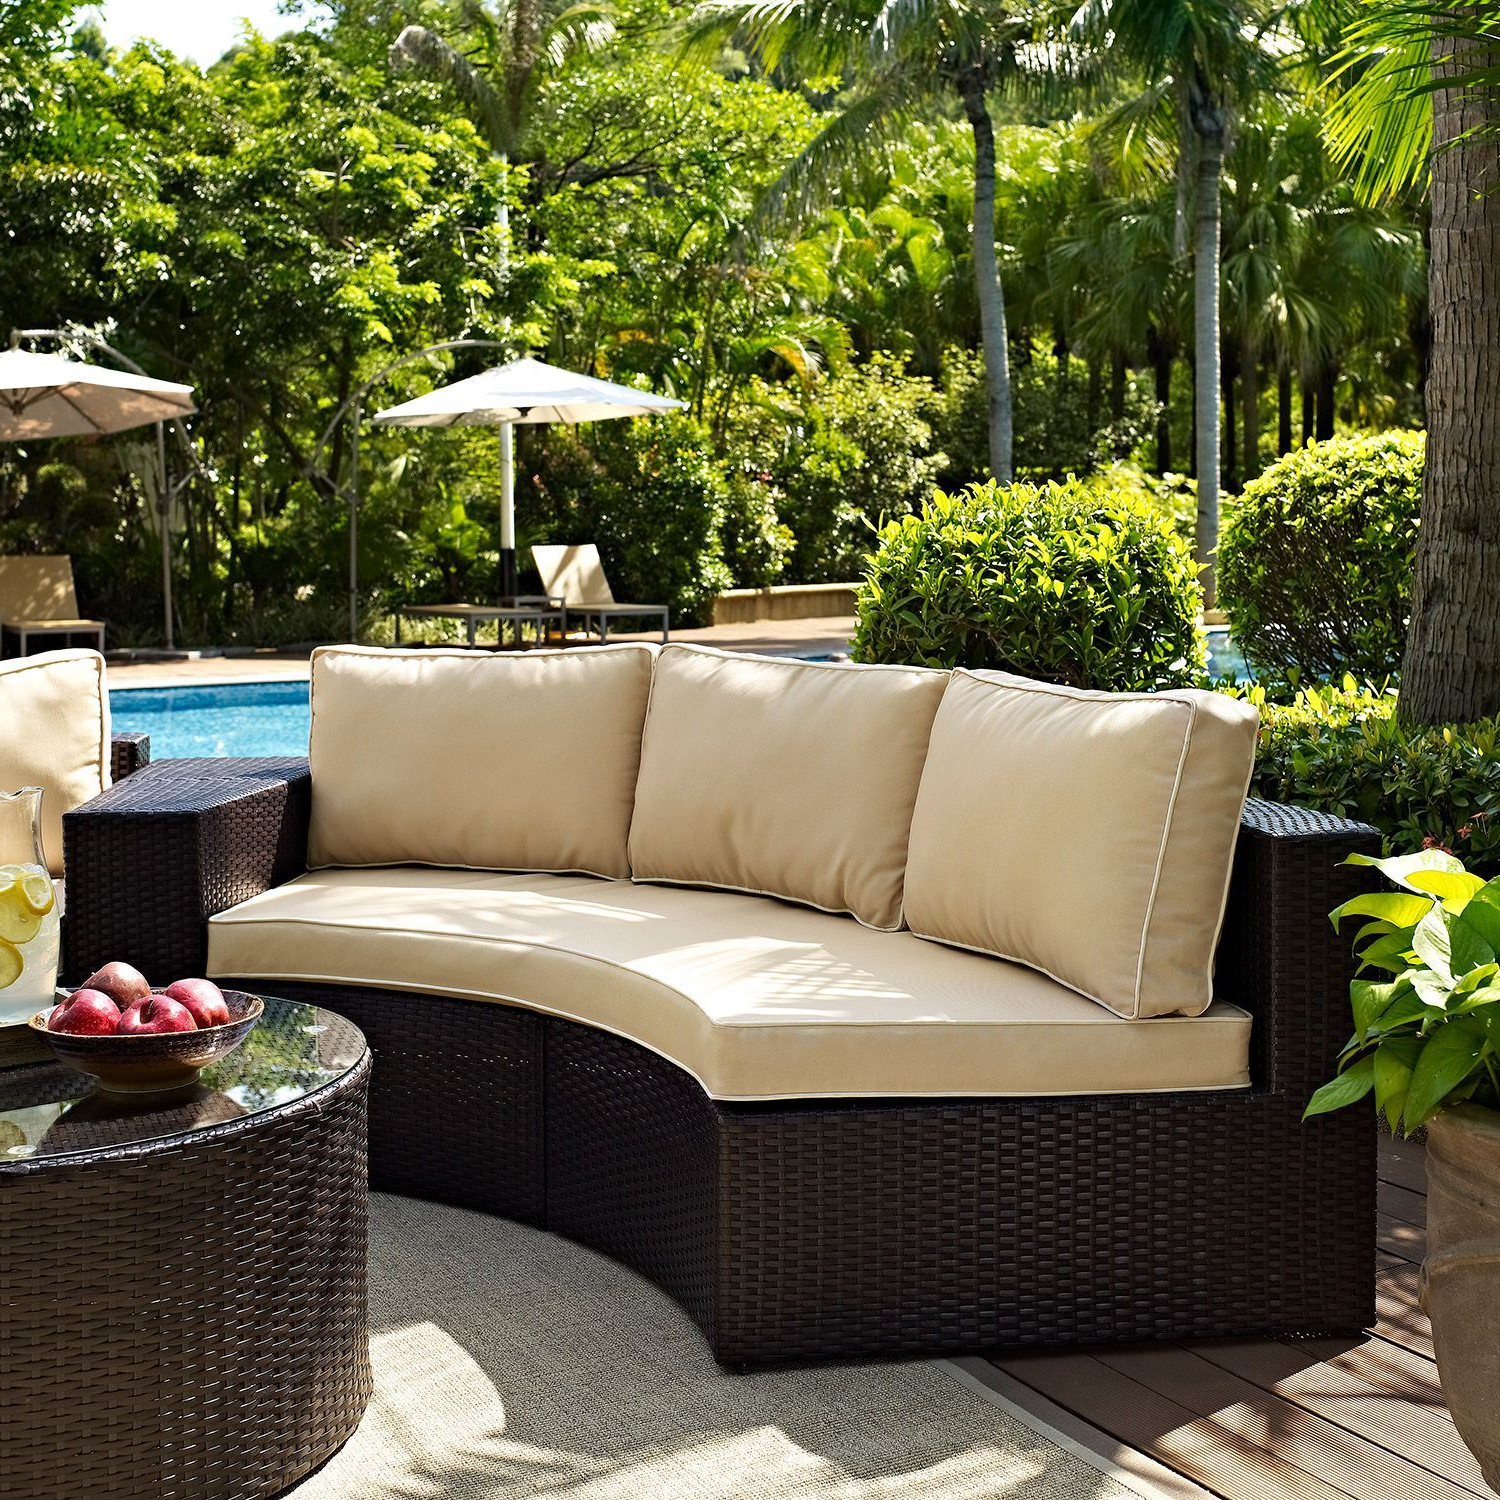 Catalina Outdoor Sofas With Cushions With Fashionable Catalina Outdoor Sofa, Brown *d (View 4 of 11)